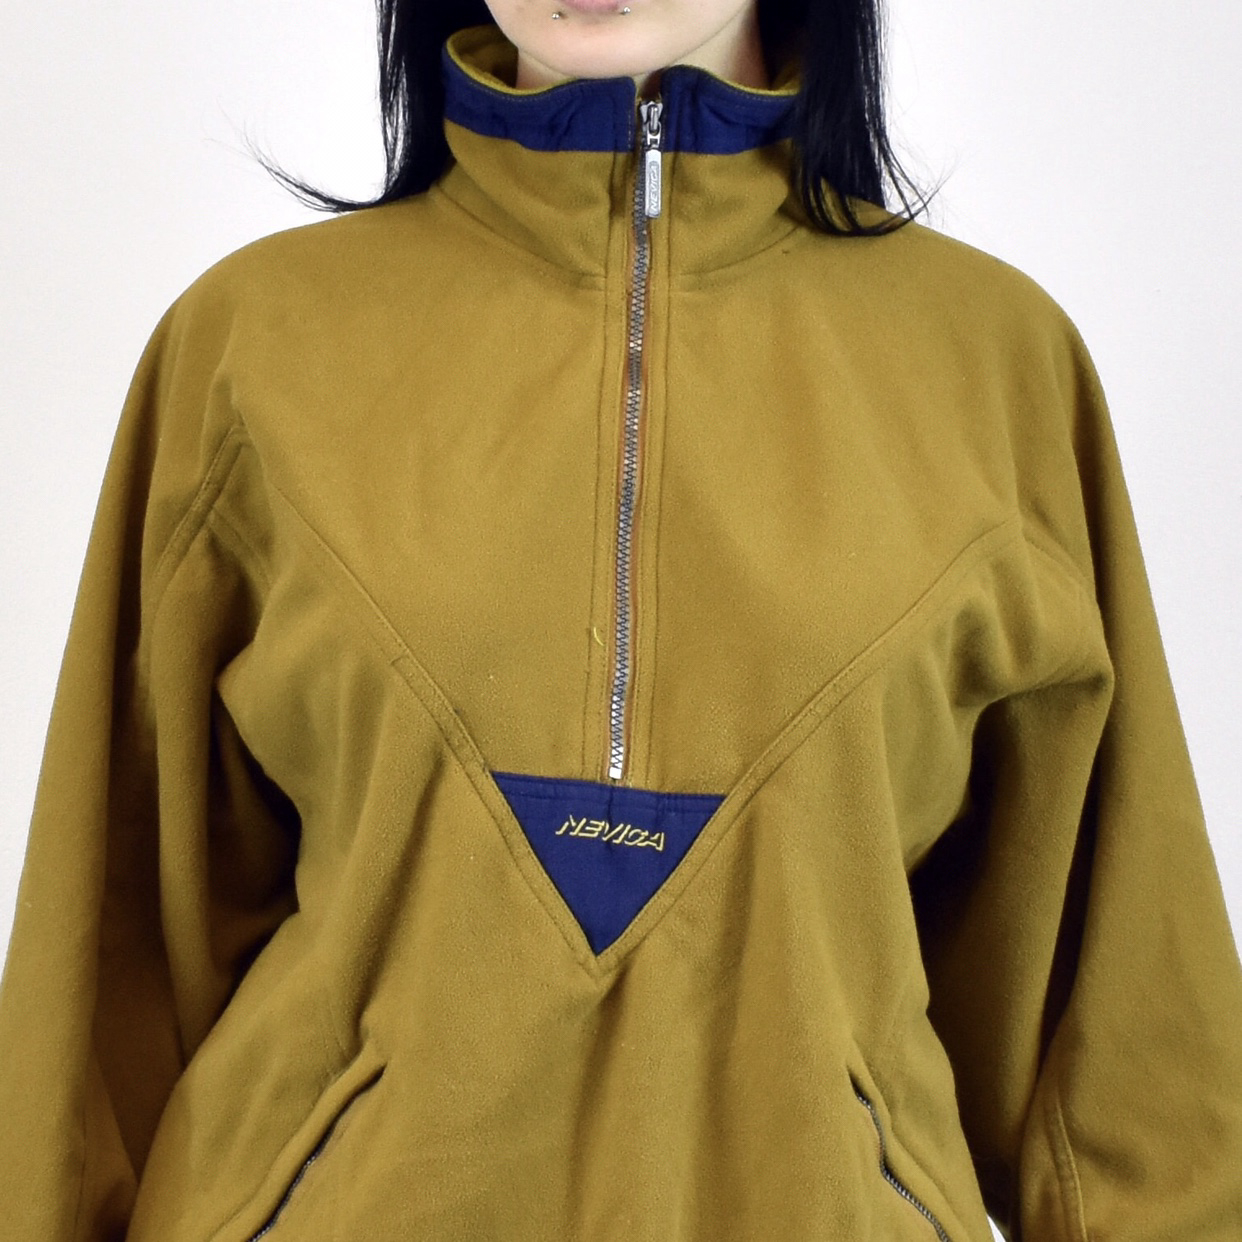 Unisex Vintage Neviga tracksuit track jacket in yellow and navy blue size L